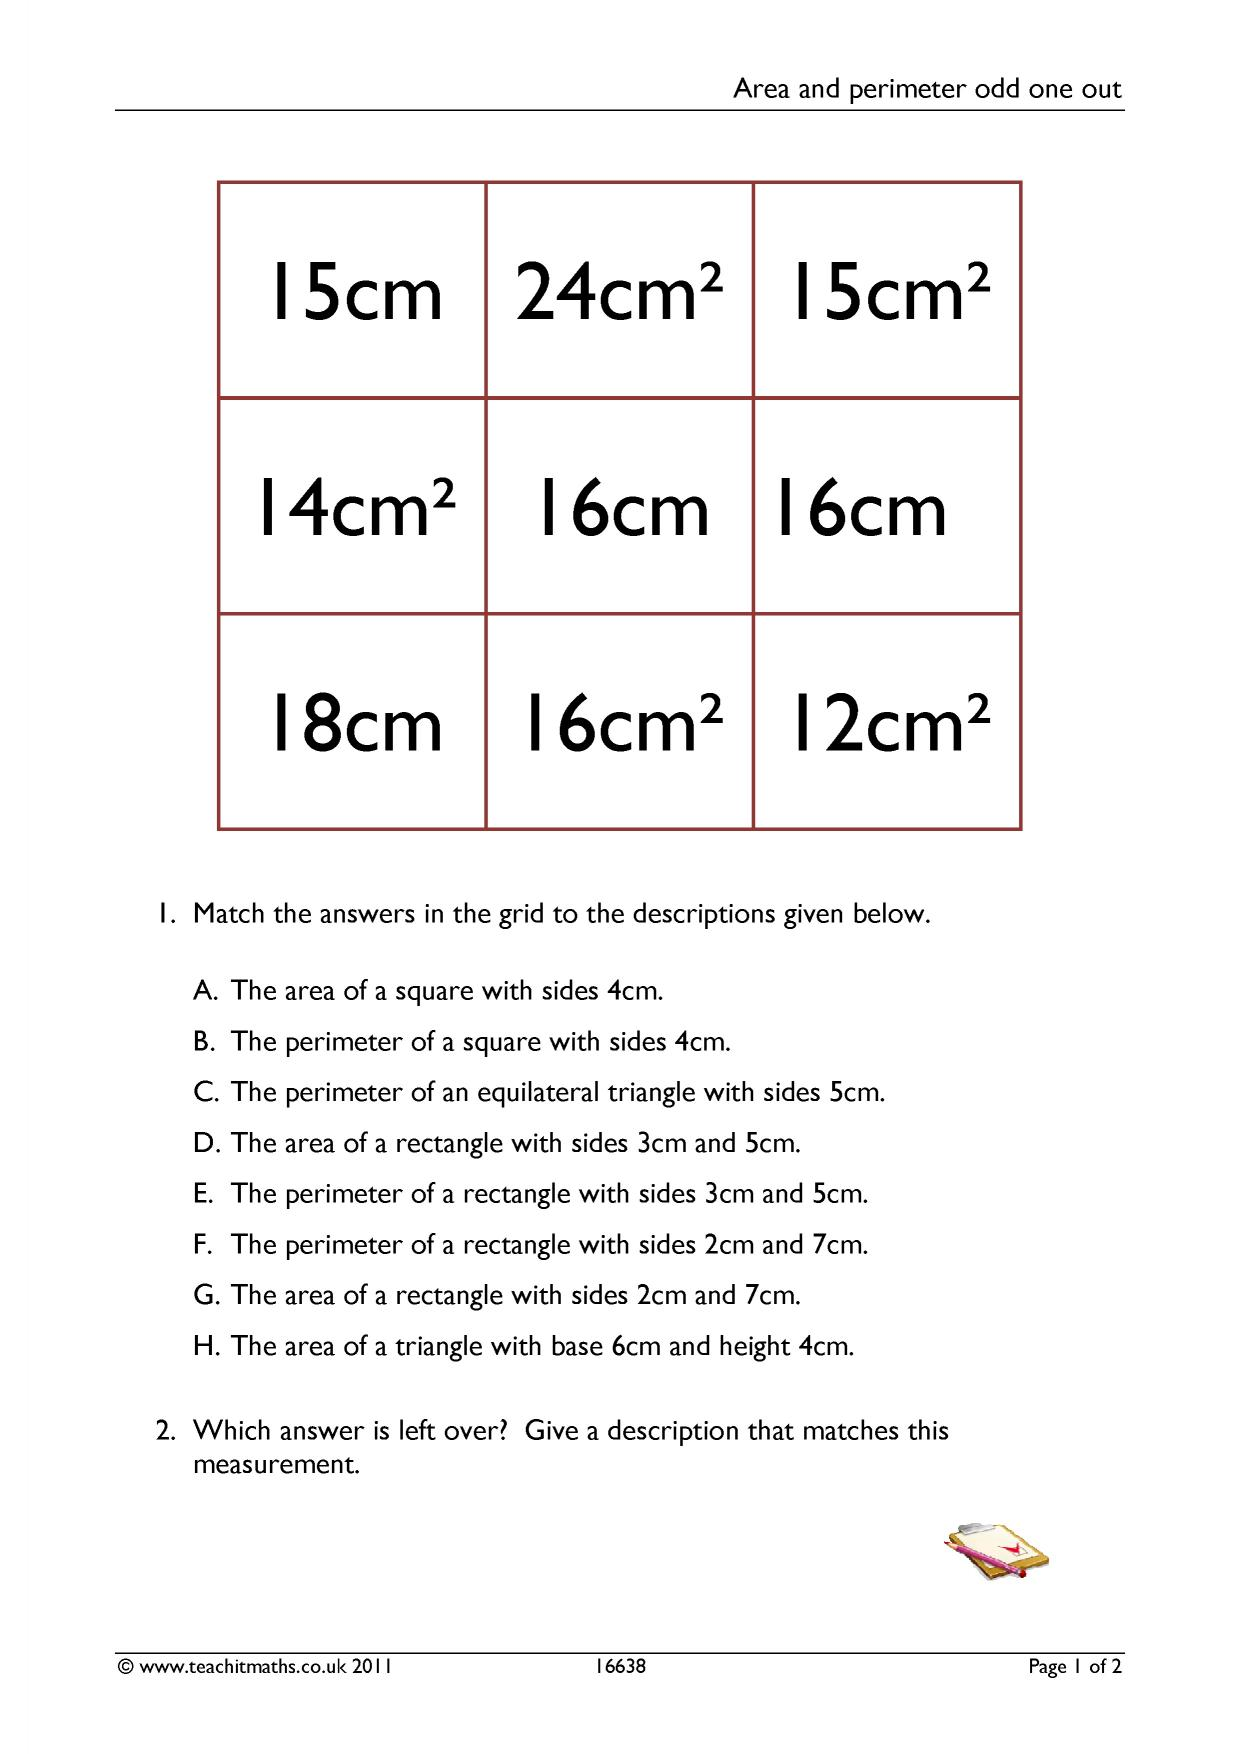 worksheet Perimeter Of A Polygon Worksheet area and perimeter polygons search results teachit maths 5 preview